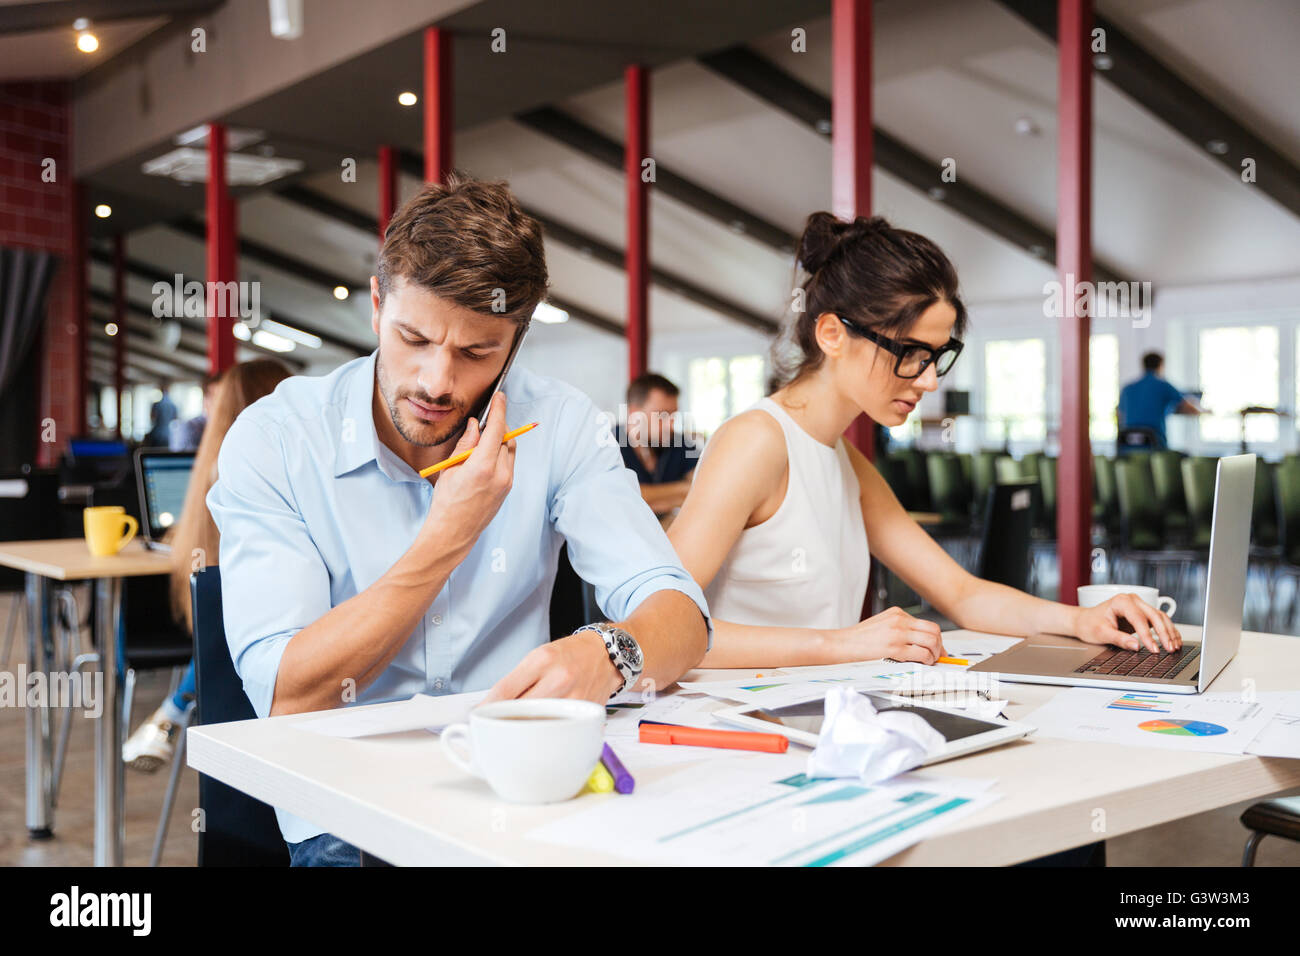 Focused young businessman and businesswoman sitting and working in office Stock Photo